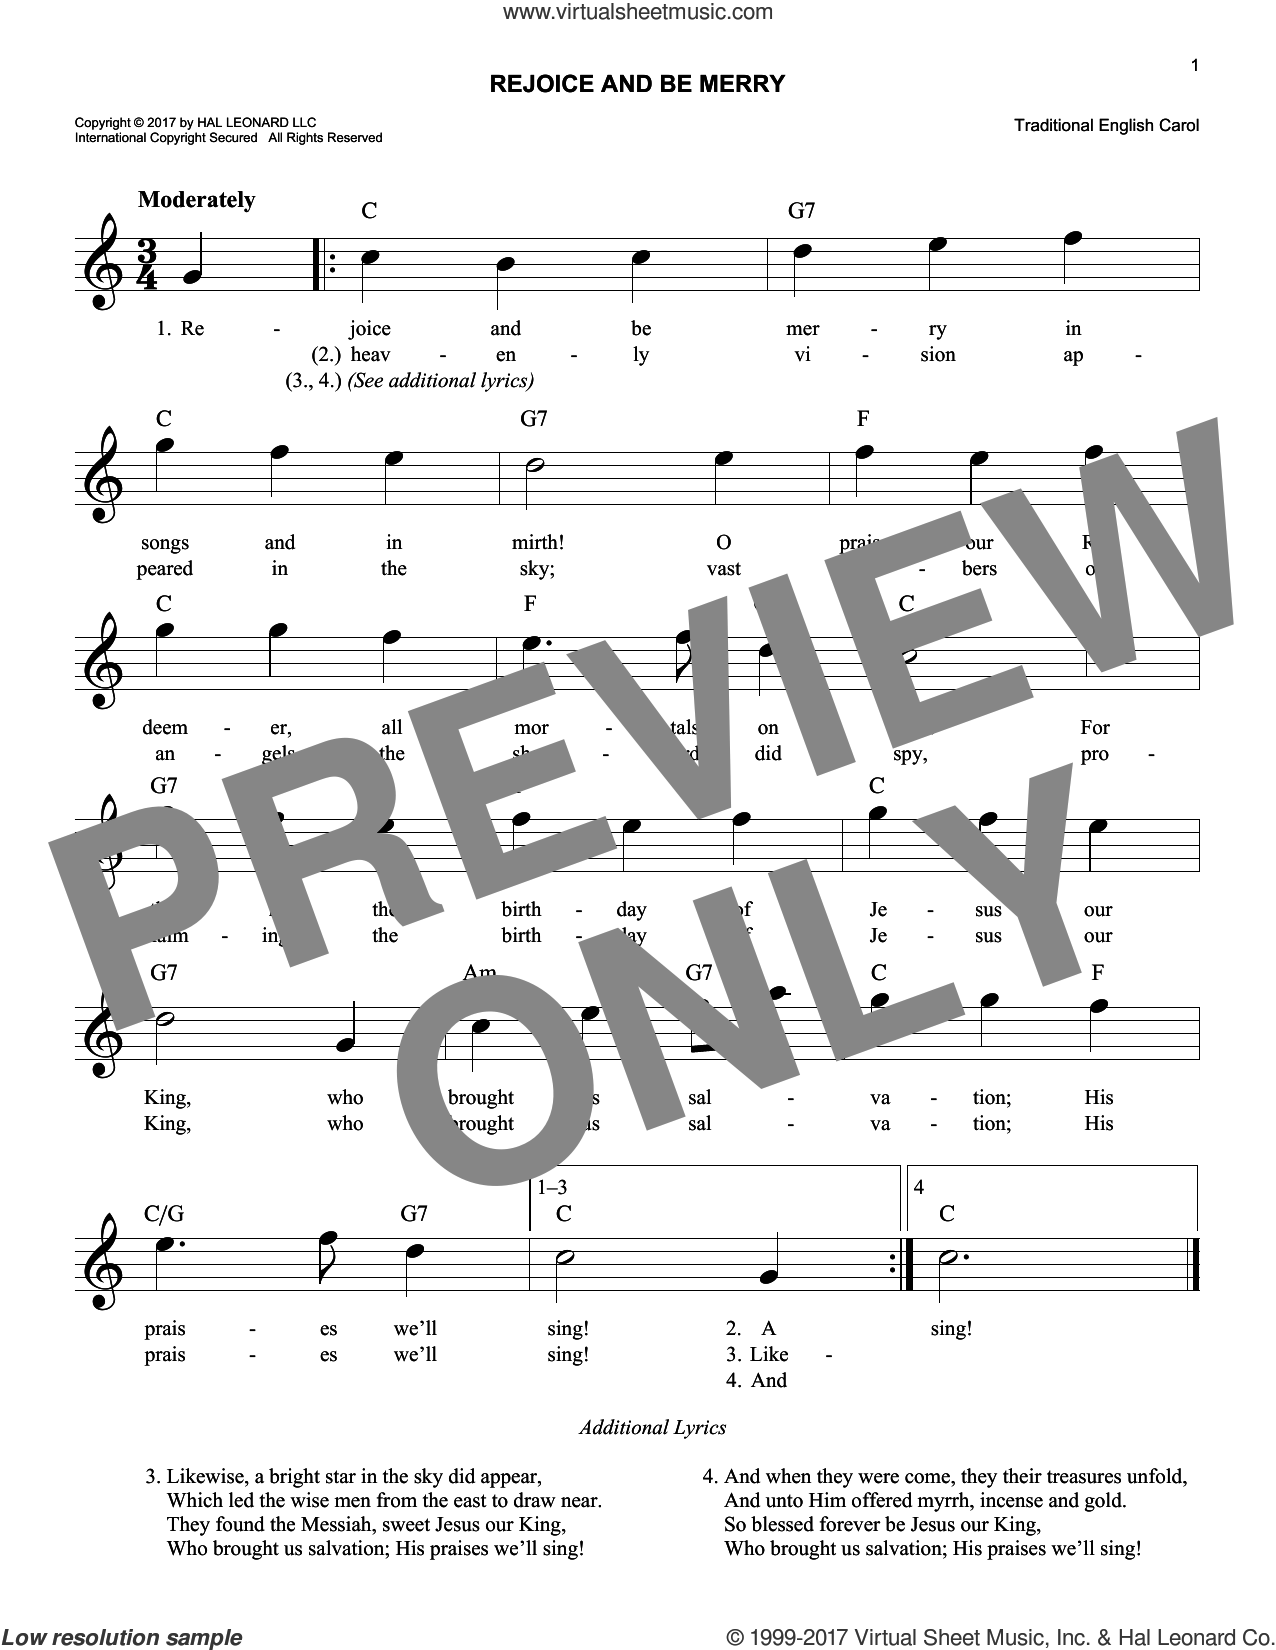 Rejoice And Be Merry sheet music for voice and other instruments (fake book), intermediate skill level